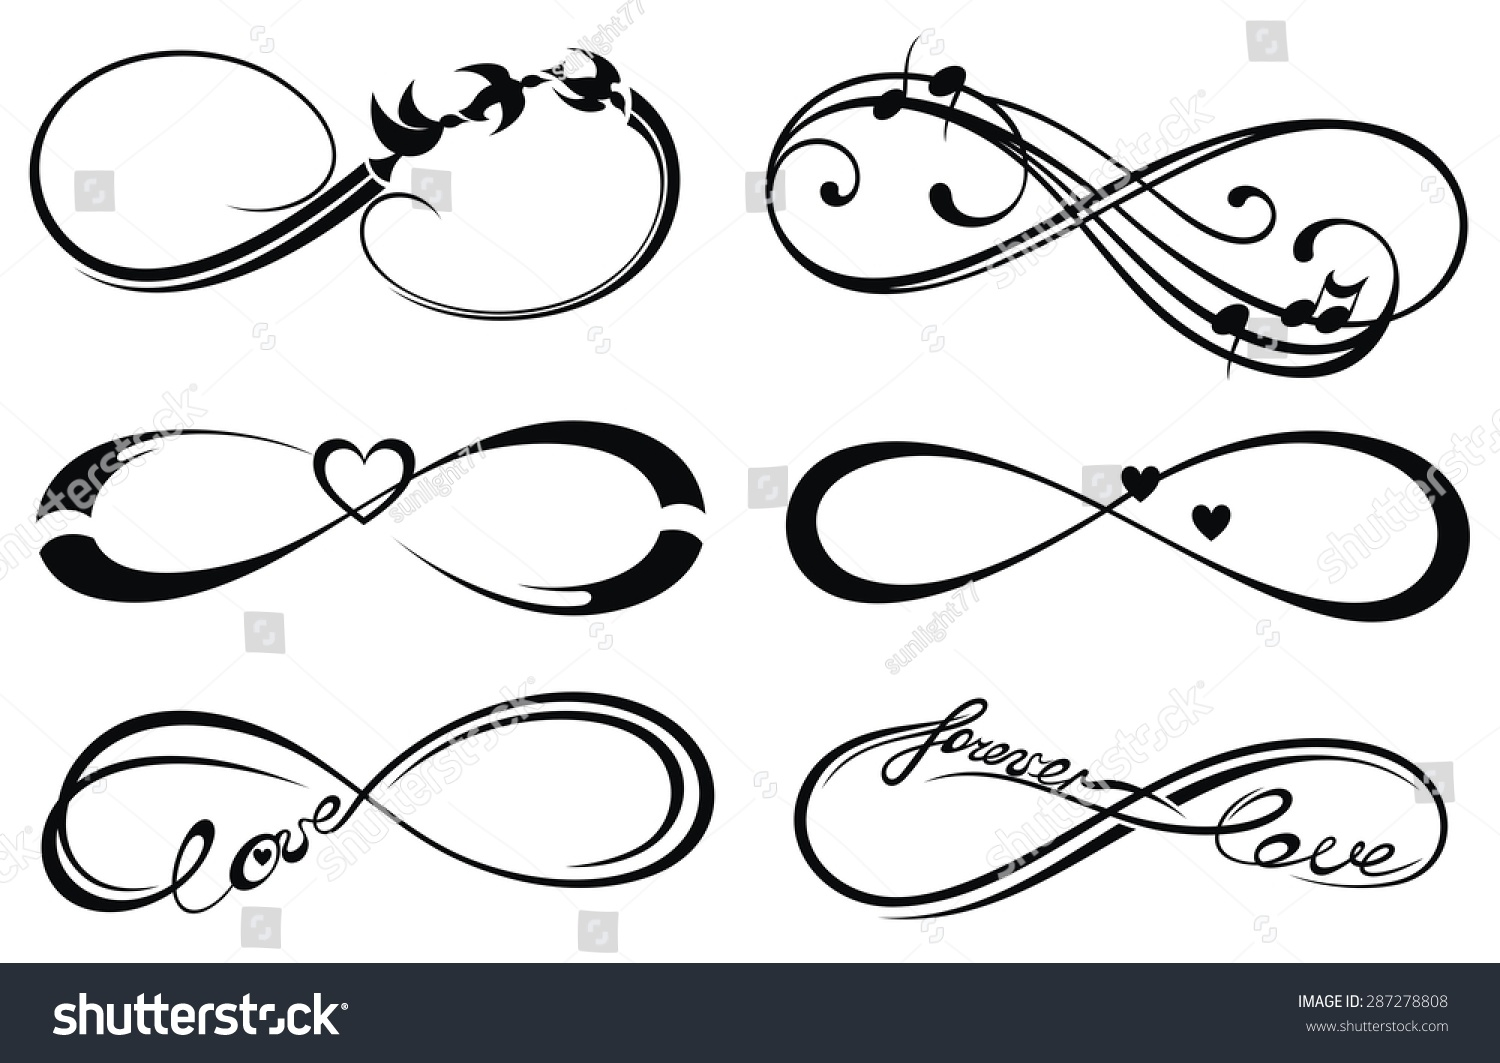 Royalty Free Infinity Love Forever Symbol 287278808 Stock Photo